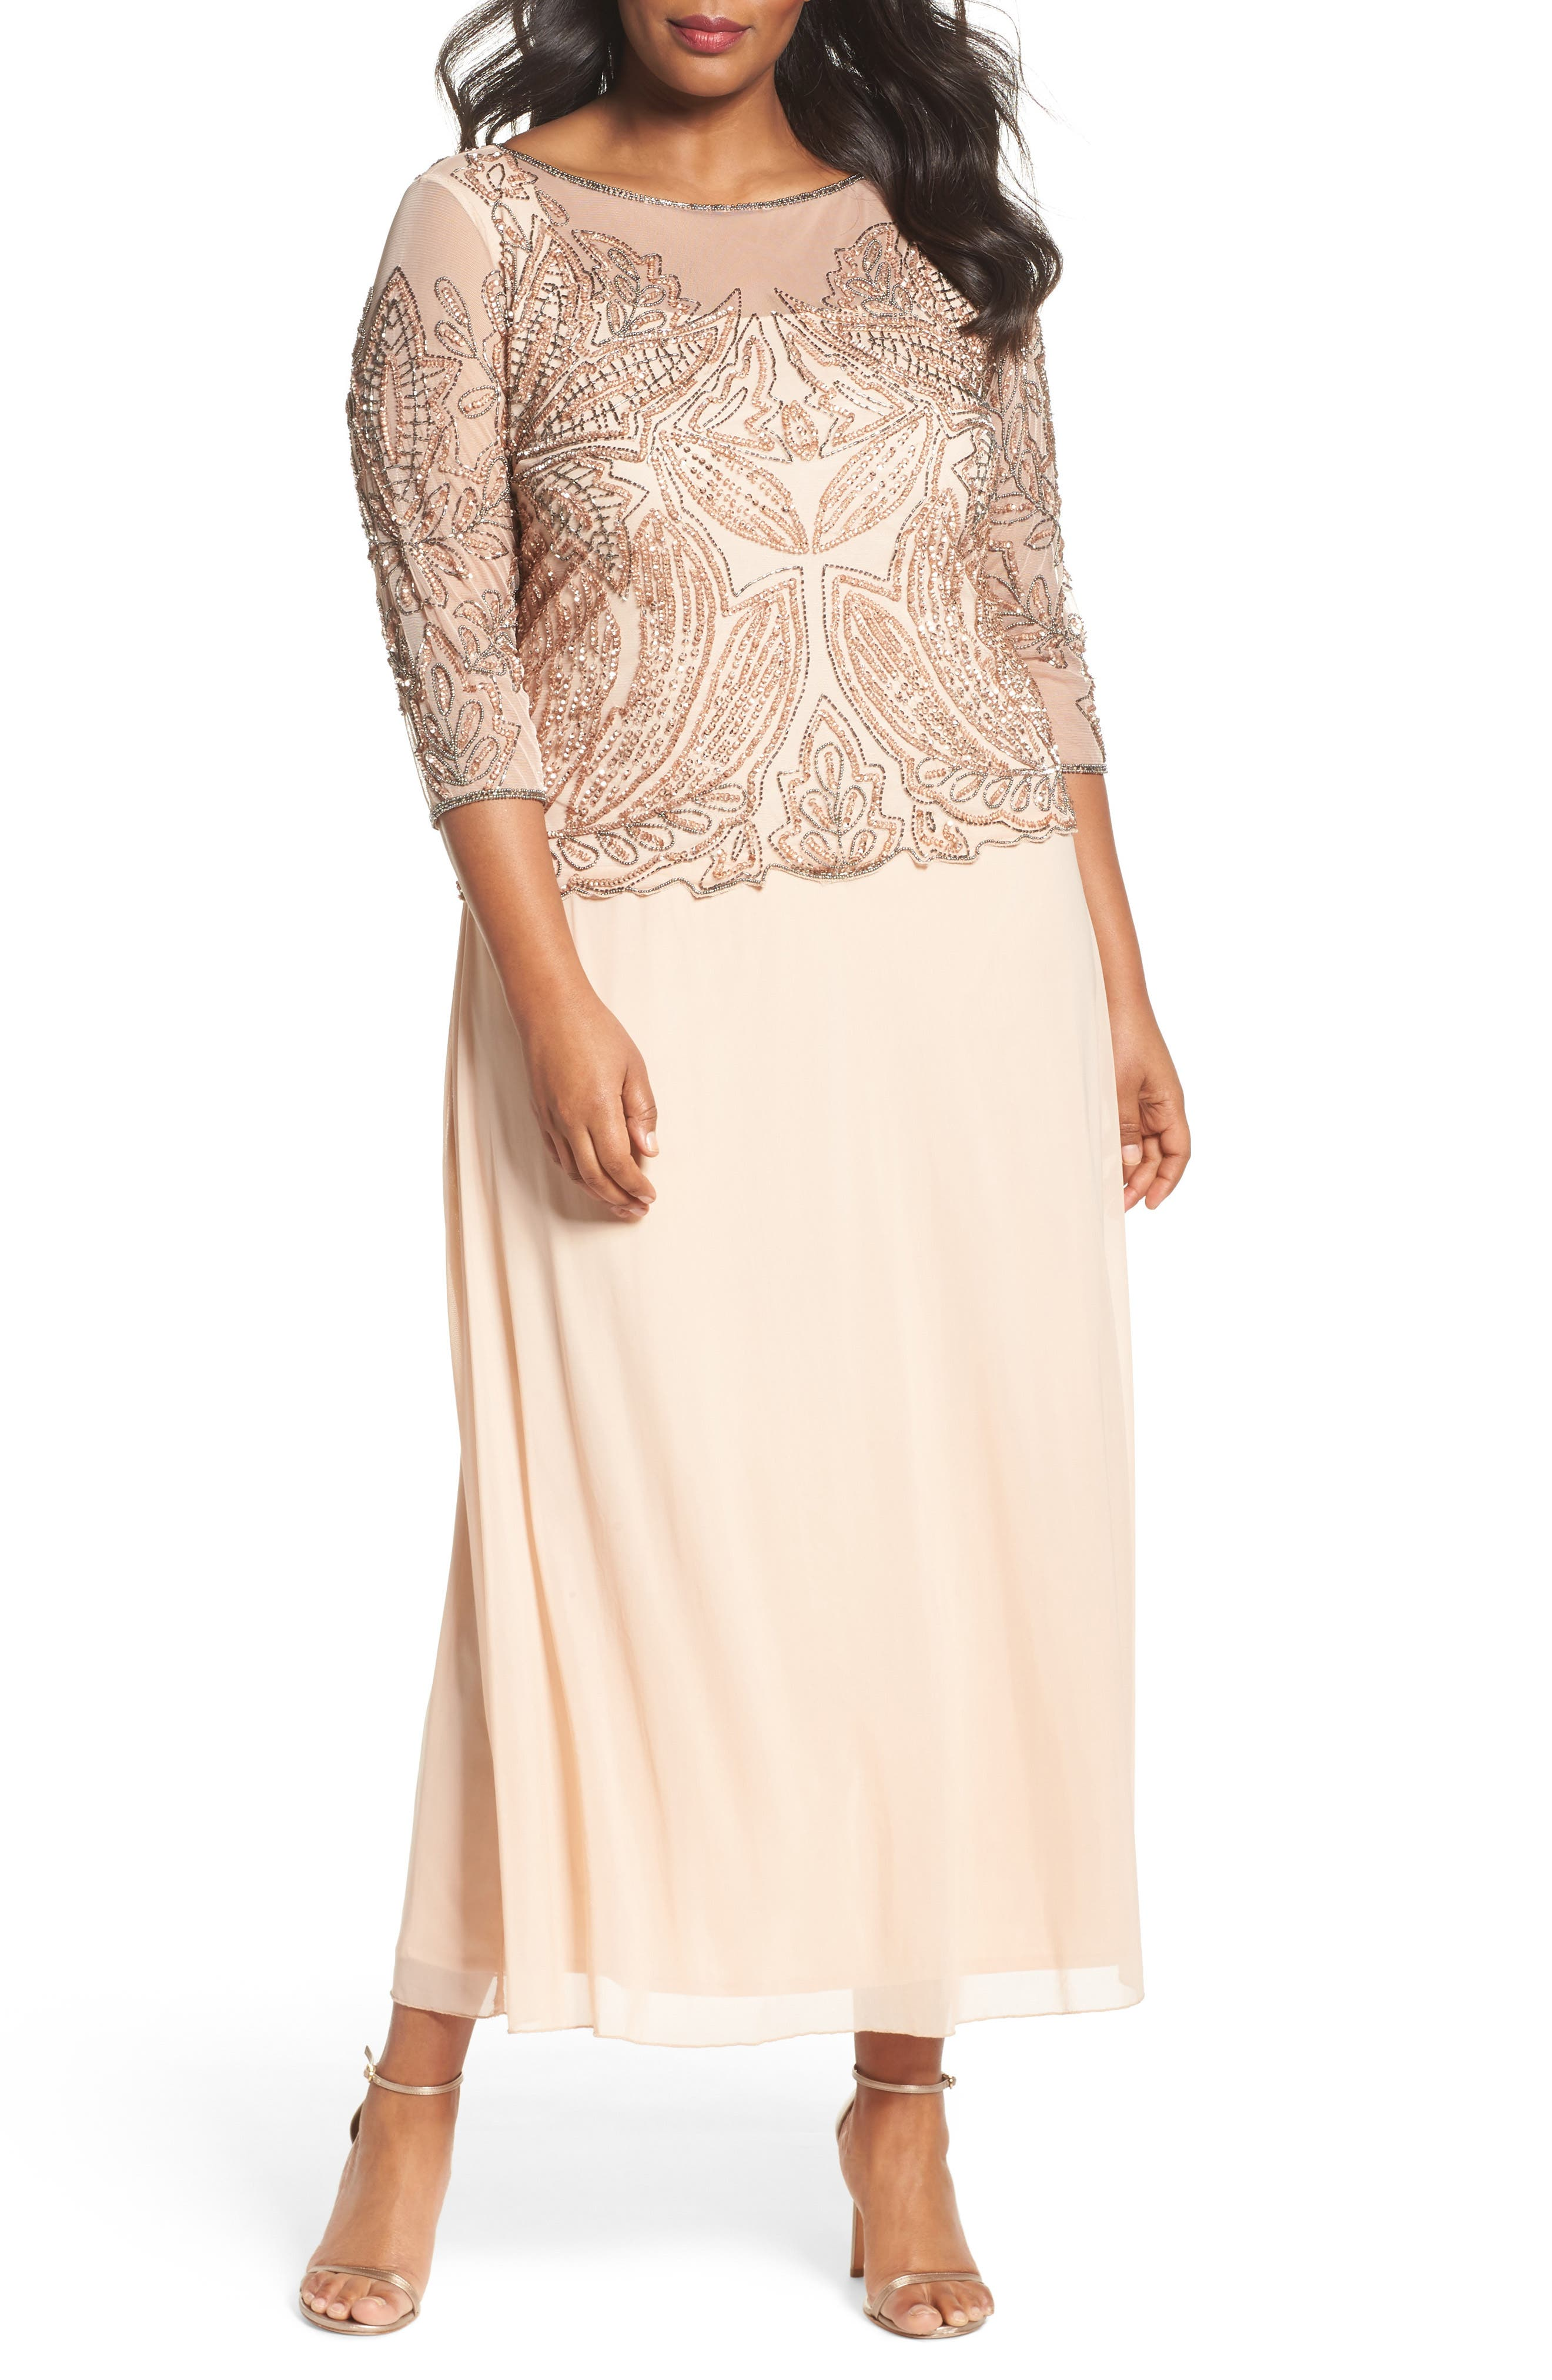 Plus Size Mother of Bride Dresses for Women